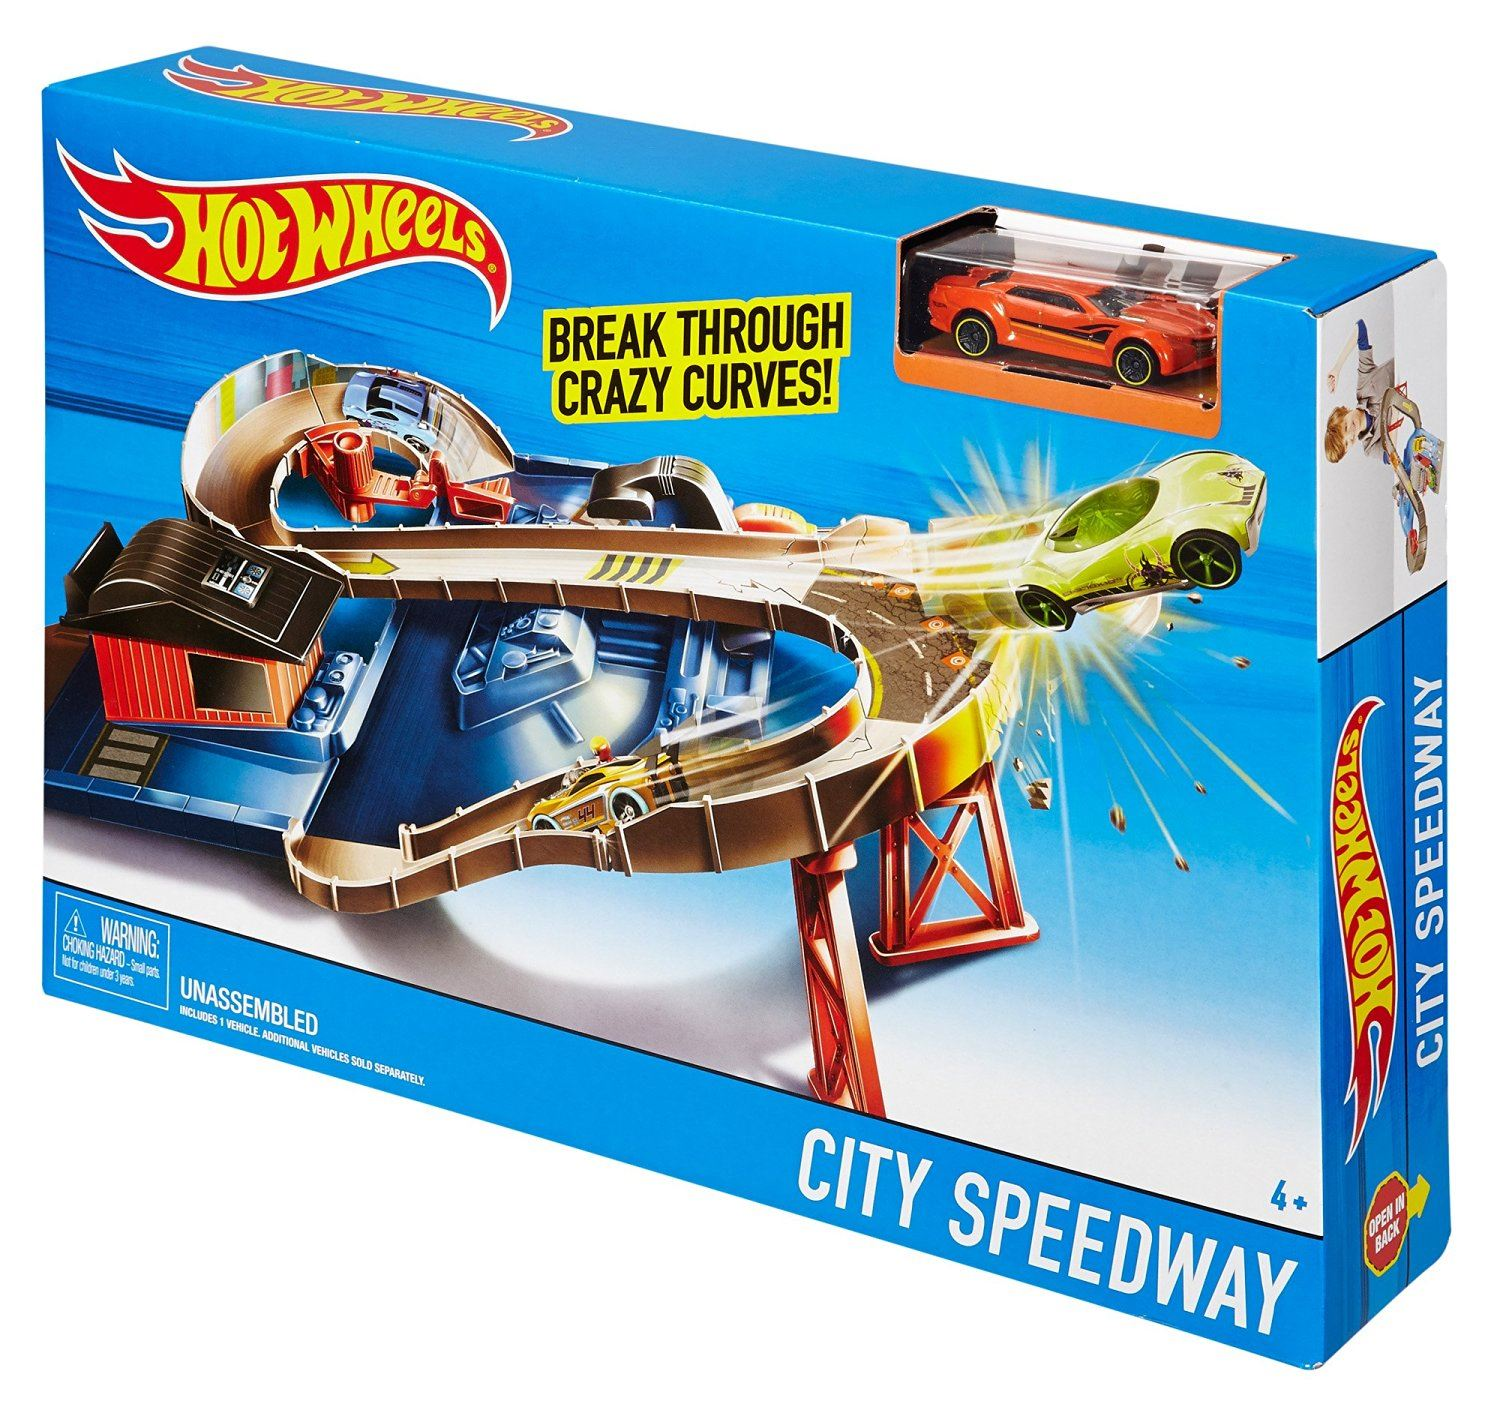 hot wheels city speedway instructions